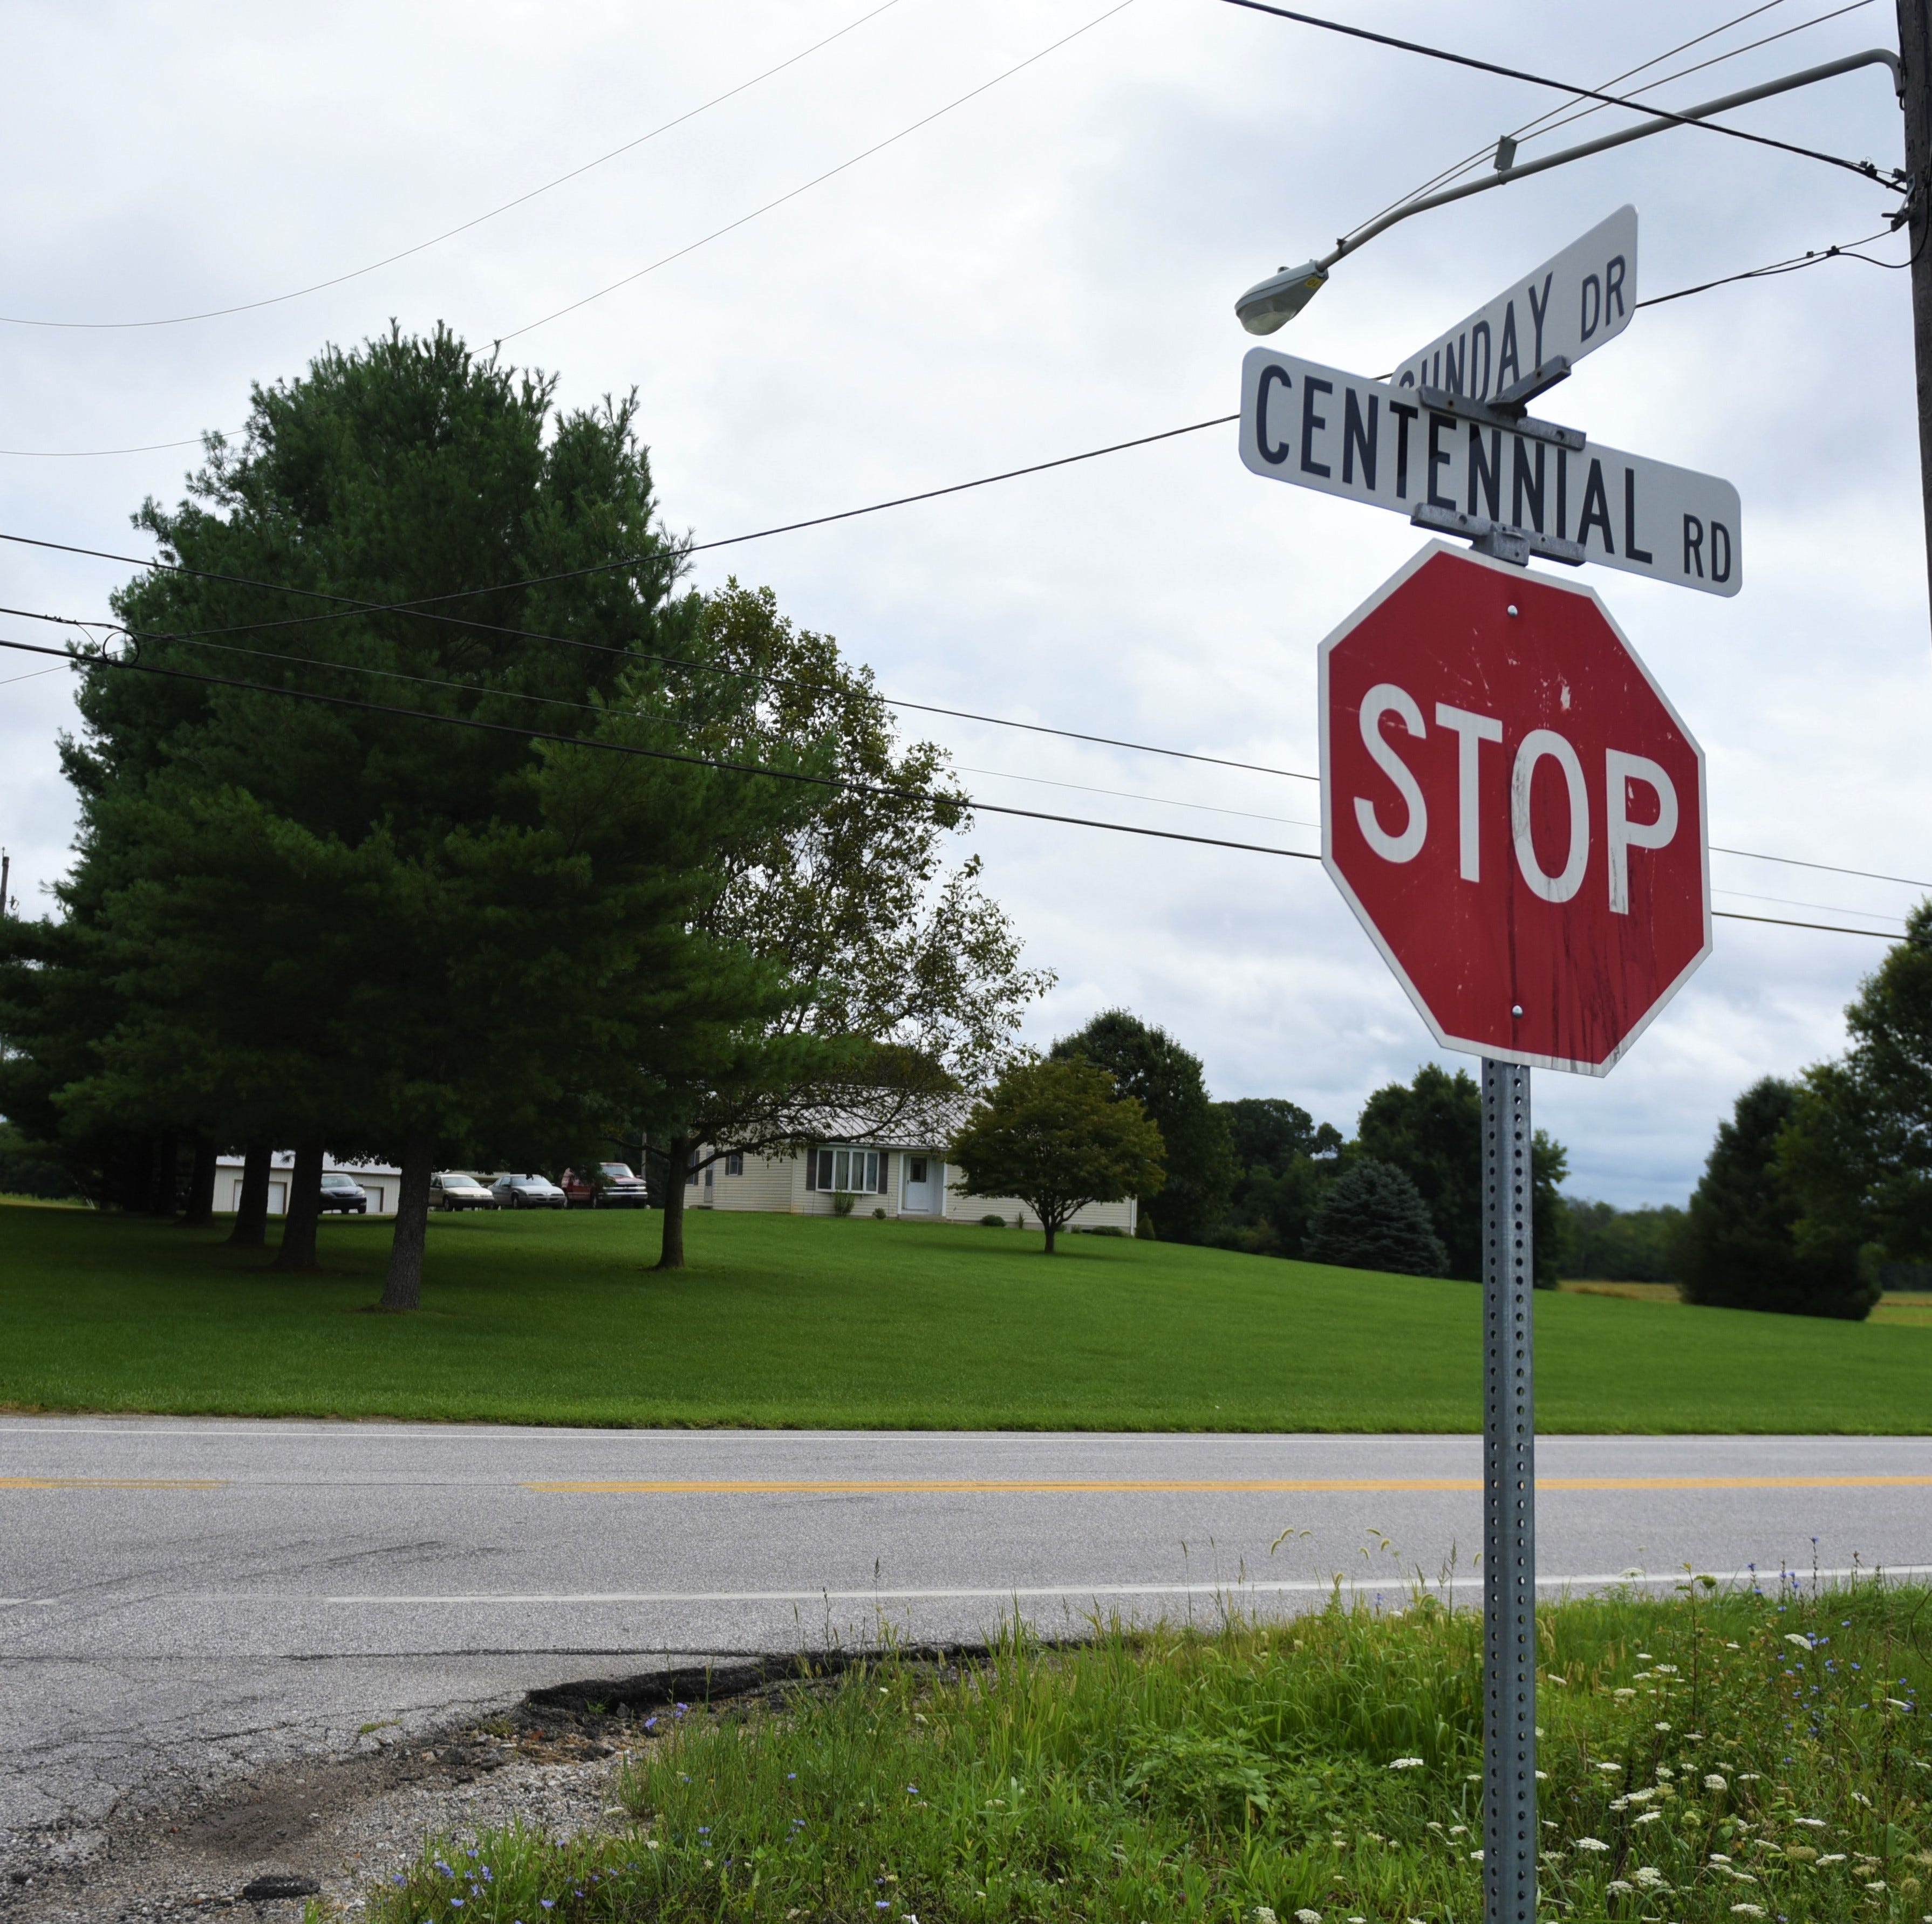 Eisenhower Drive: To extend or not to extend? That is the question for PennDOT